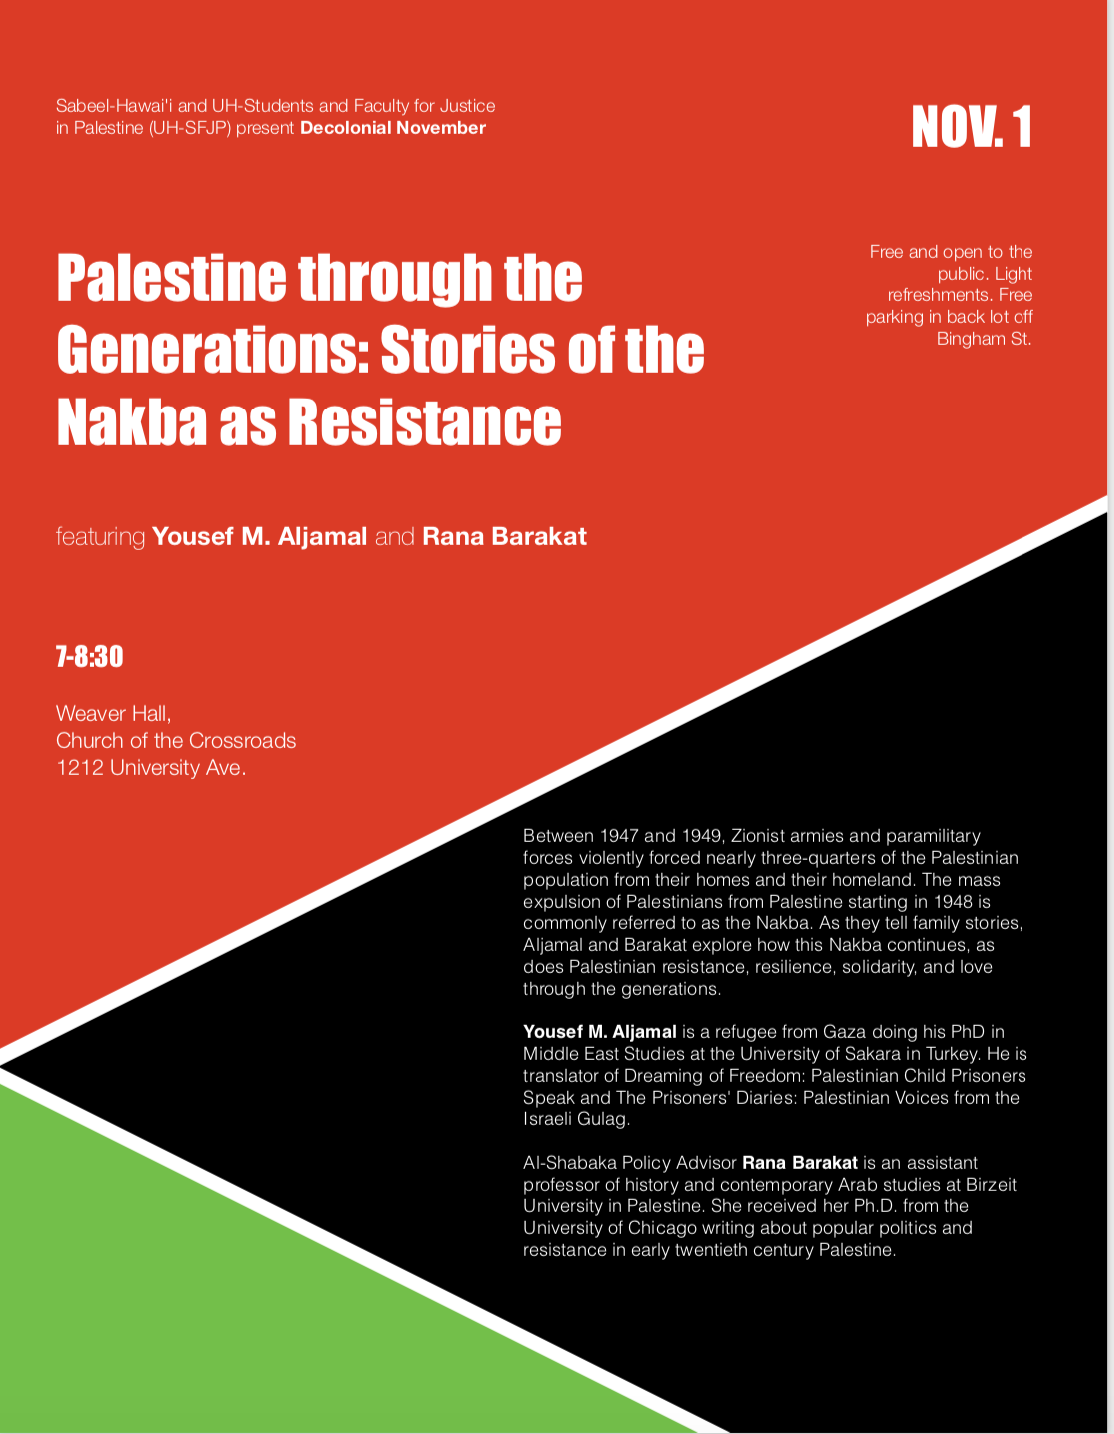 11/1 Palestine though the Generations: Stories of the Nakba as Resitance